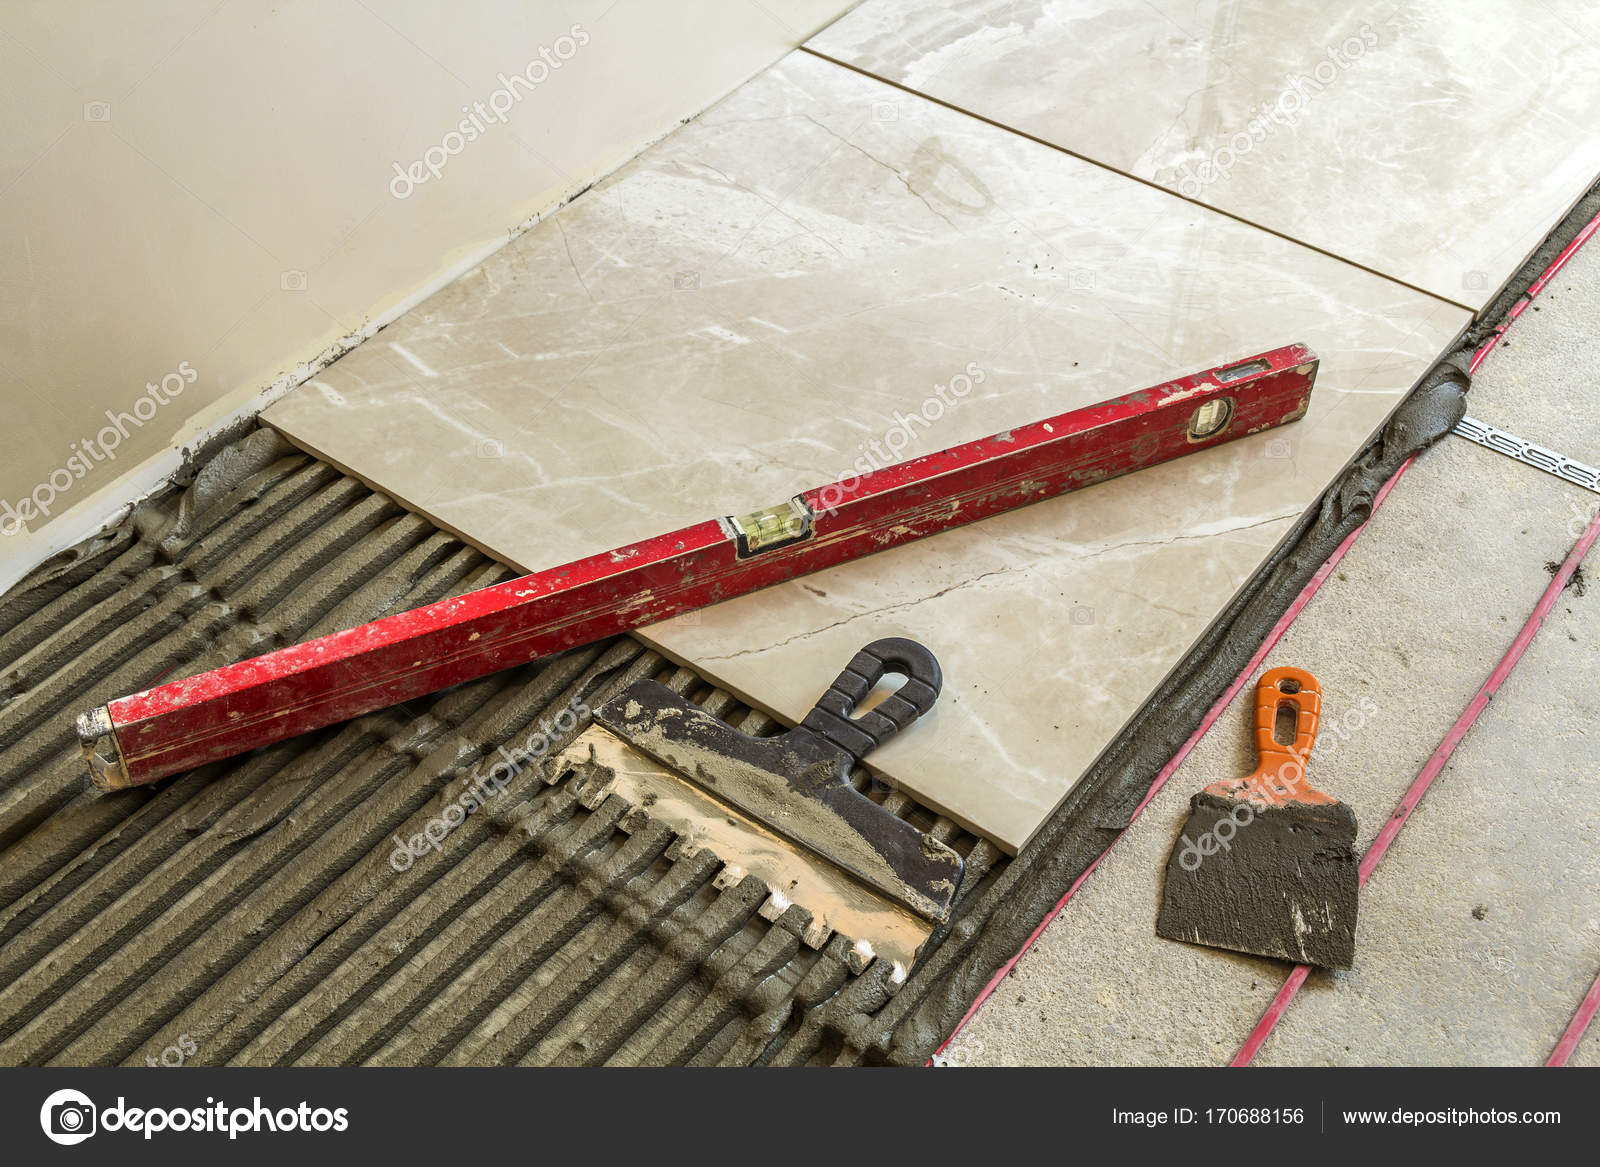 Ceramic tiles and tools for tiler floor tiles installation hom ceramic tiles and tools for tiler floor tiles installation home improvement renovation ceramic tile floor adhesive mortar level photo by bilanoli dailygadgetfo Image collections